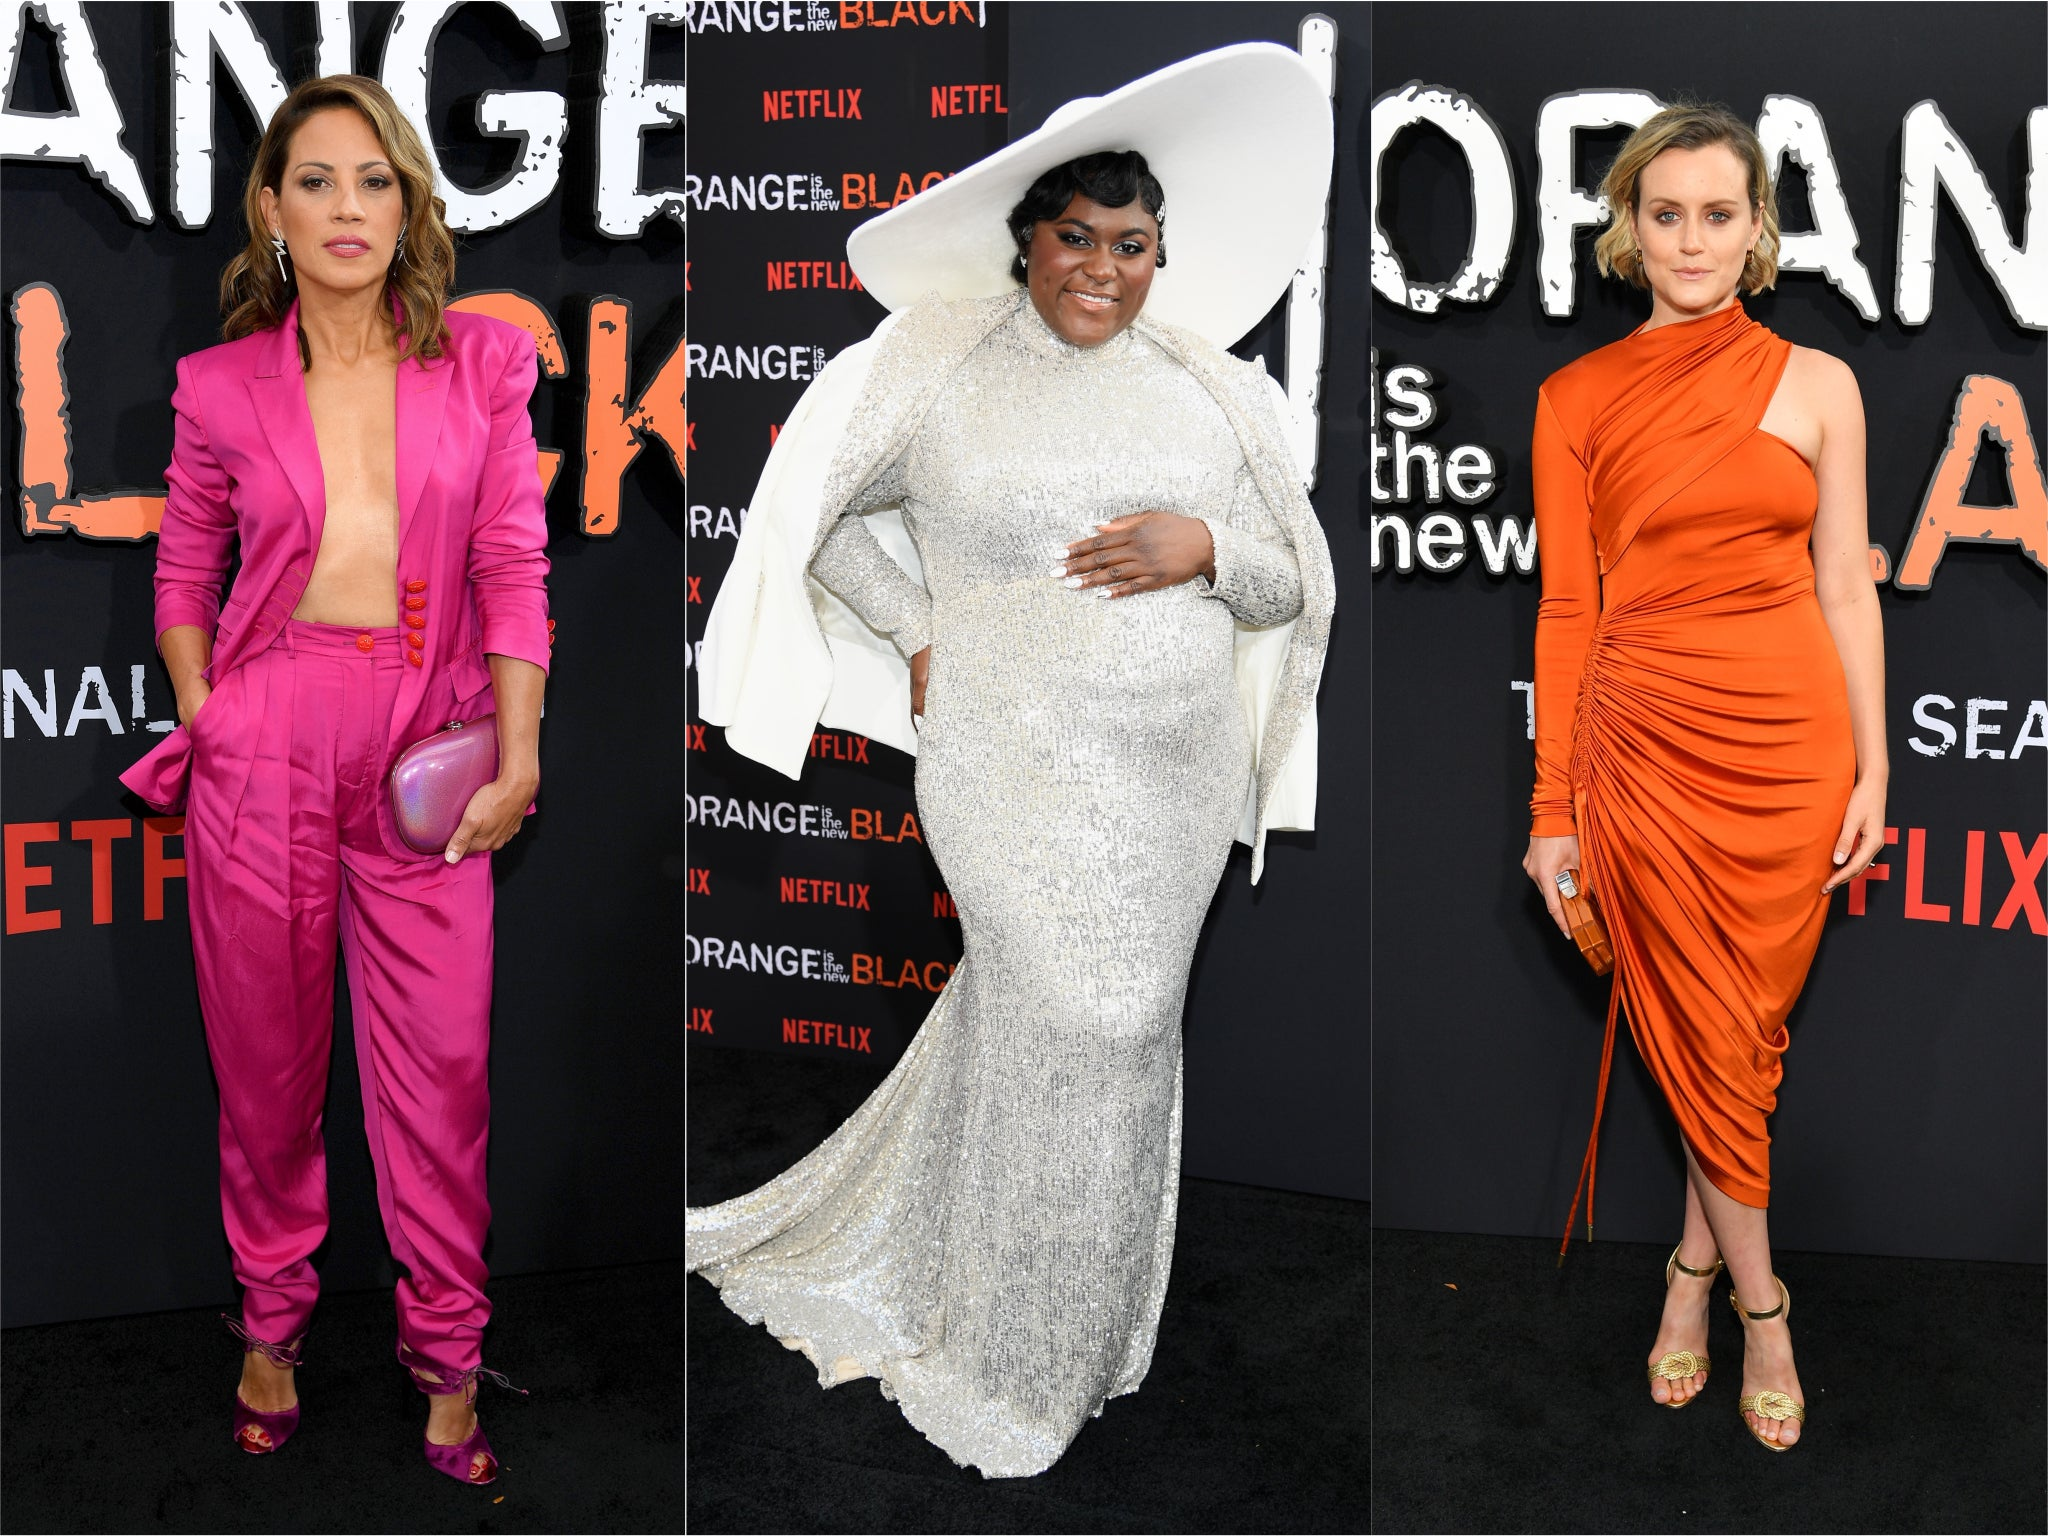 Orange Is The New Black: Best-dressed stars at season seven premiere